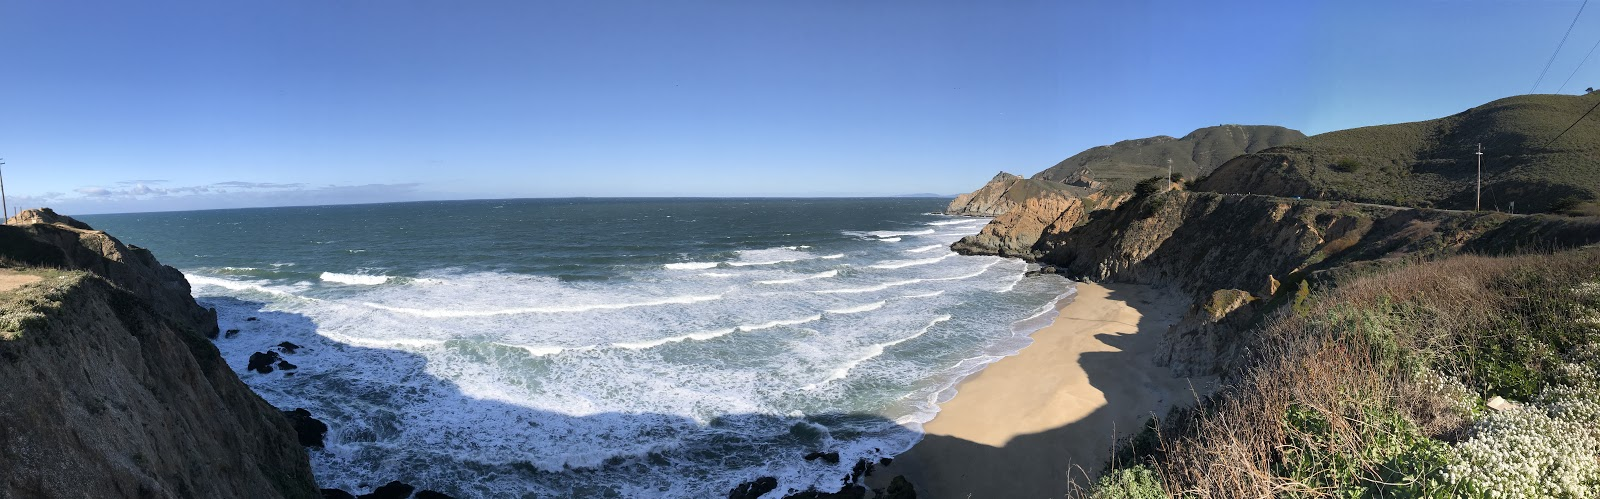 panoramic view beautiful secluded california sandy beach and wavy ocean surrounded by green hills on a clear day. See the beautiful coast of California during a california road trip